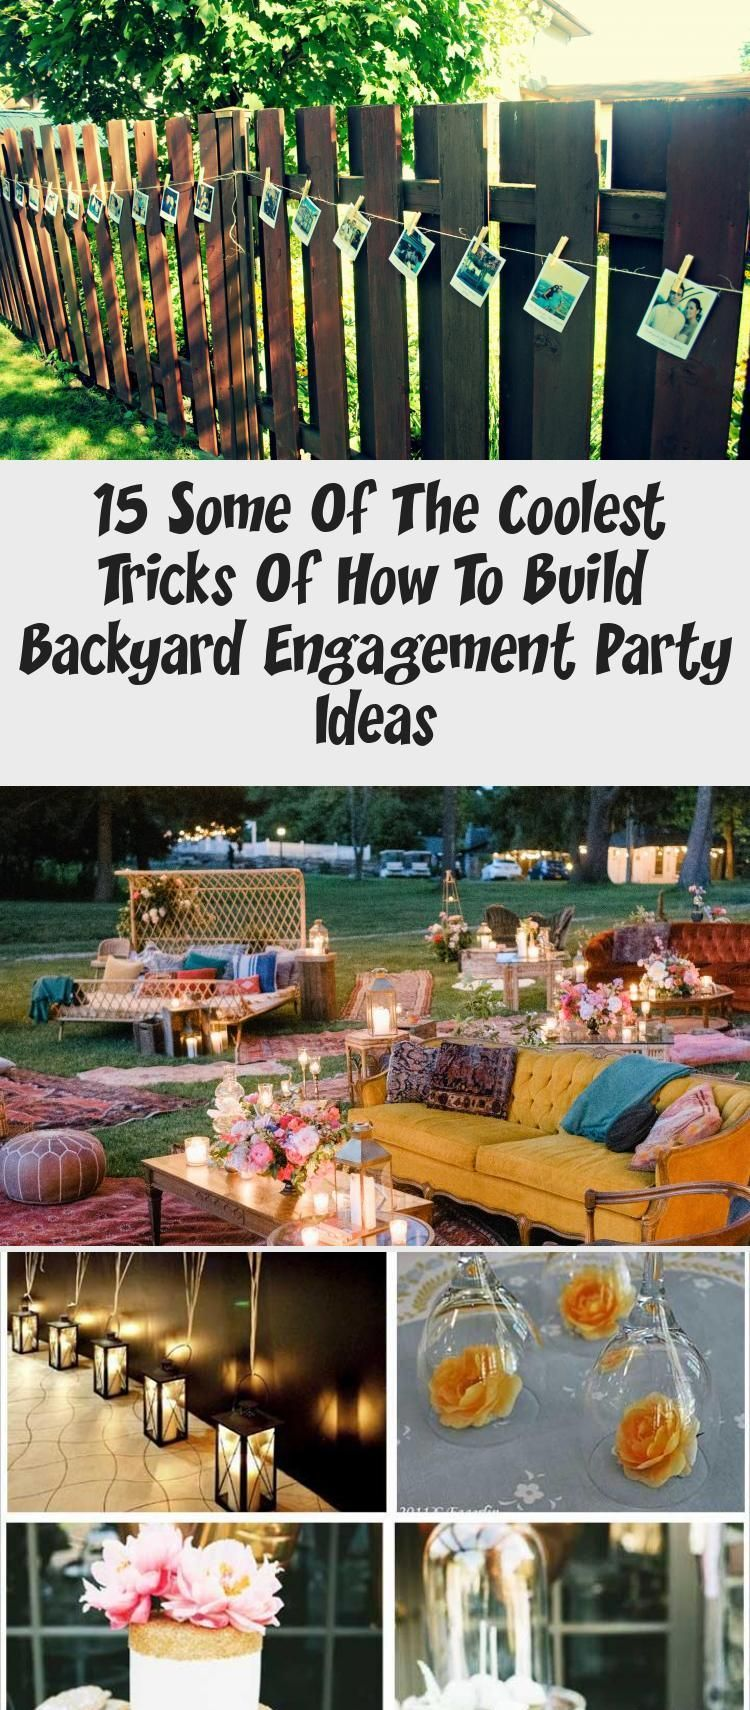 15 Some Of The Coolest Tricks Of How To Build Backyard Engagement Party Ideas Engagementp Backyard Engagement Parties Engagement Party Engagement Party Themes Diy backyard engagement party